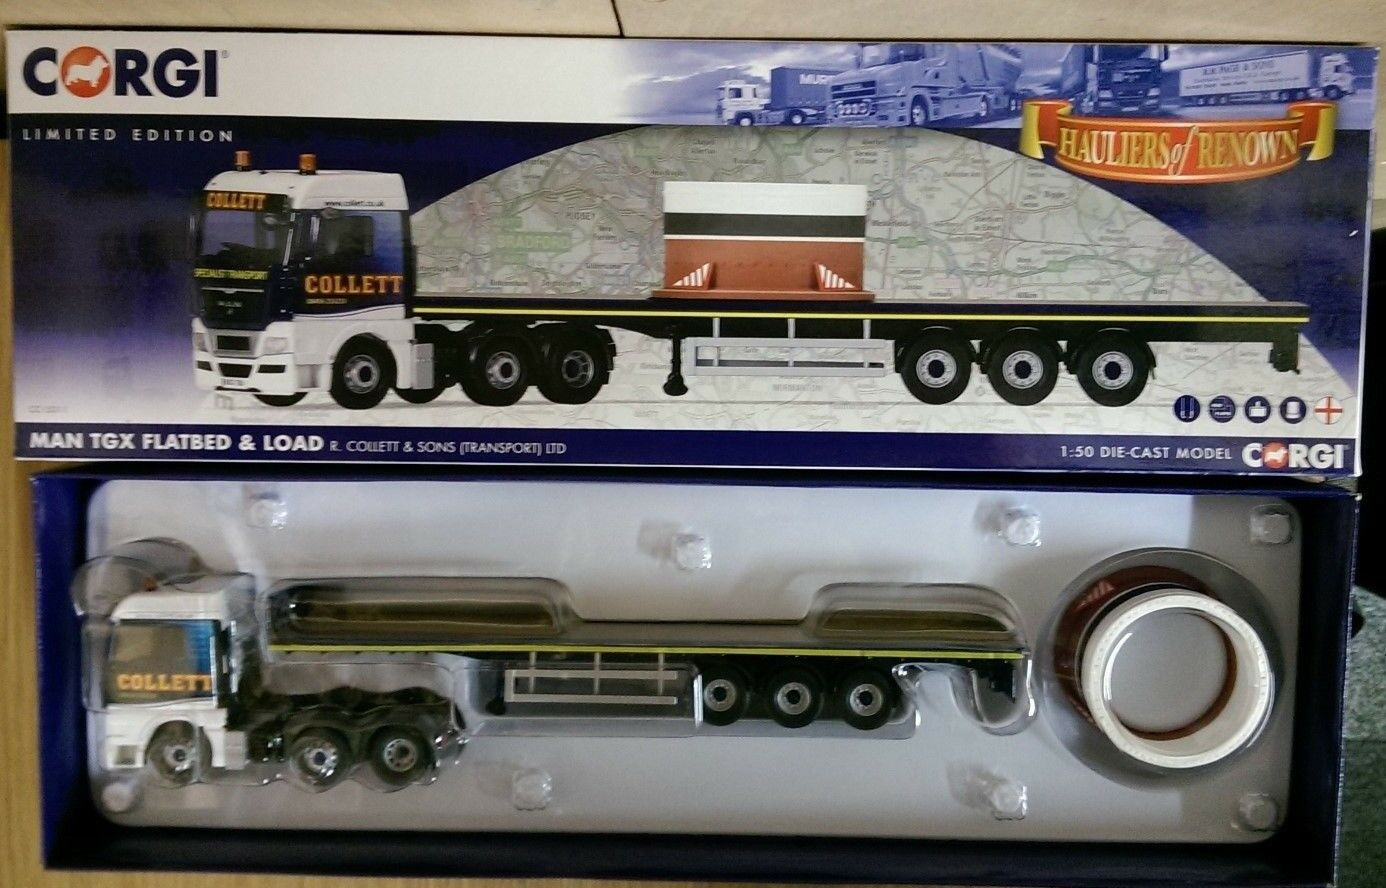 Corgi CC15211 Man TGX plano y carga R. Collett & Sons Ltd Edition no 800 de 800